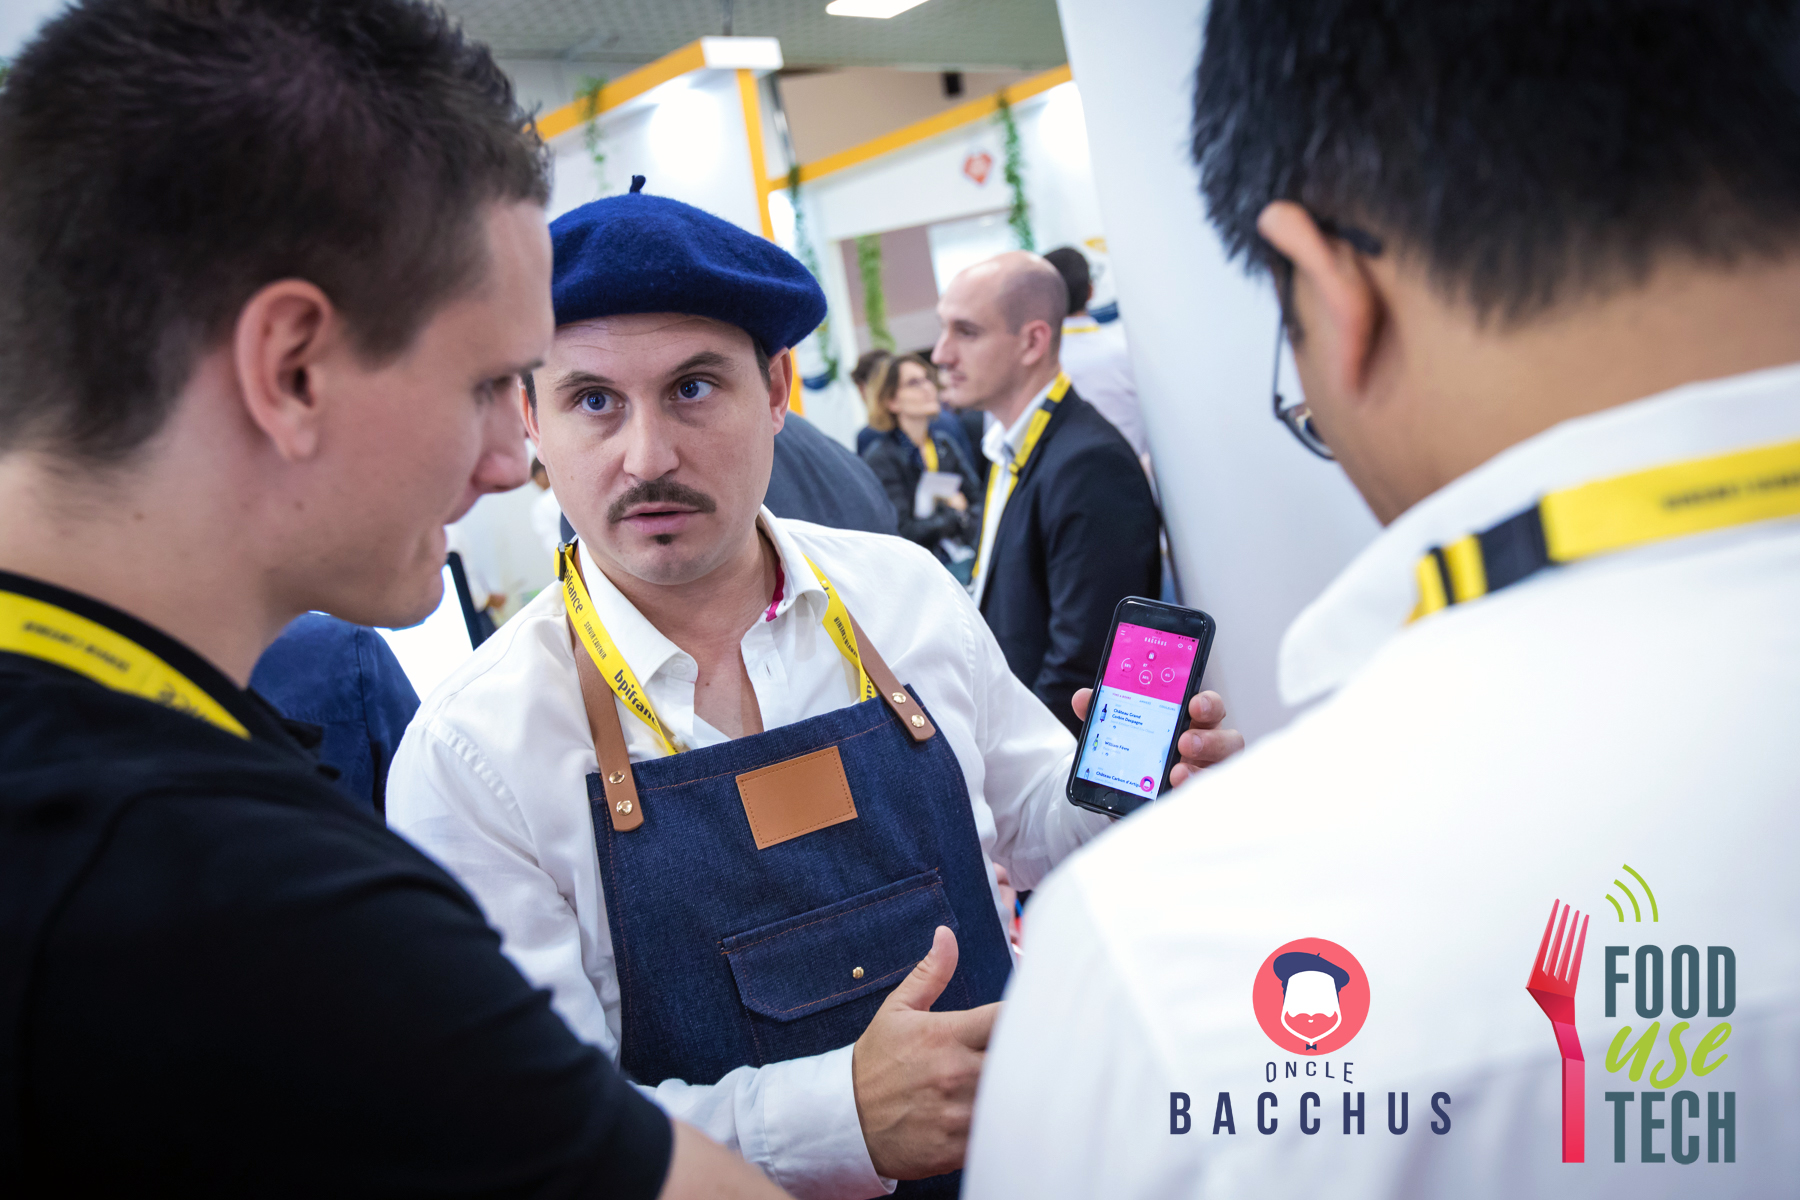 FoodTech2018